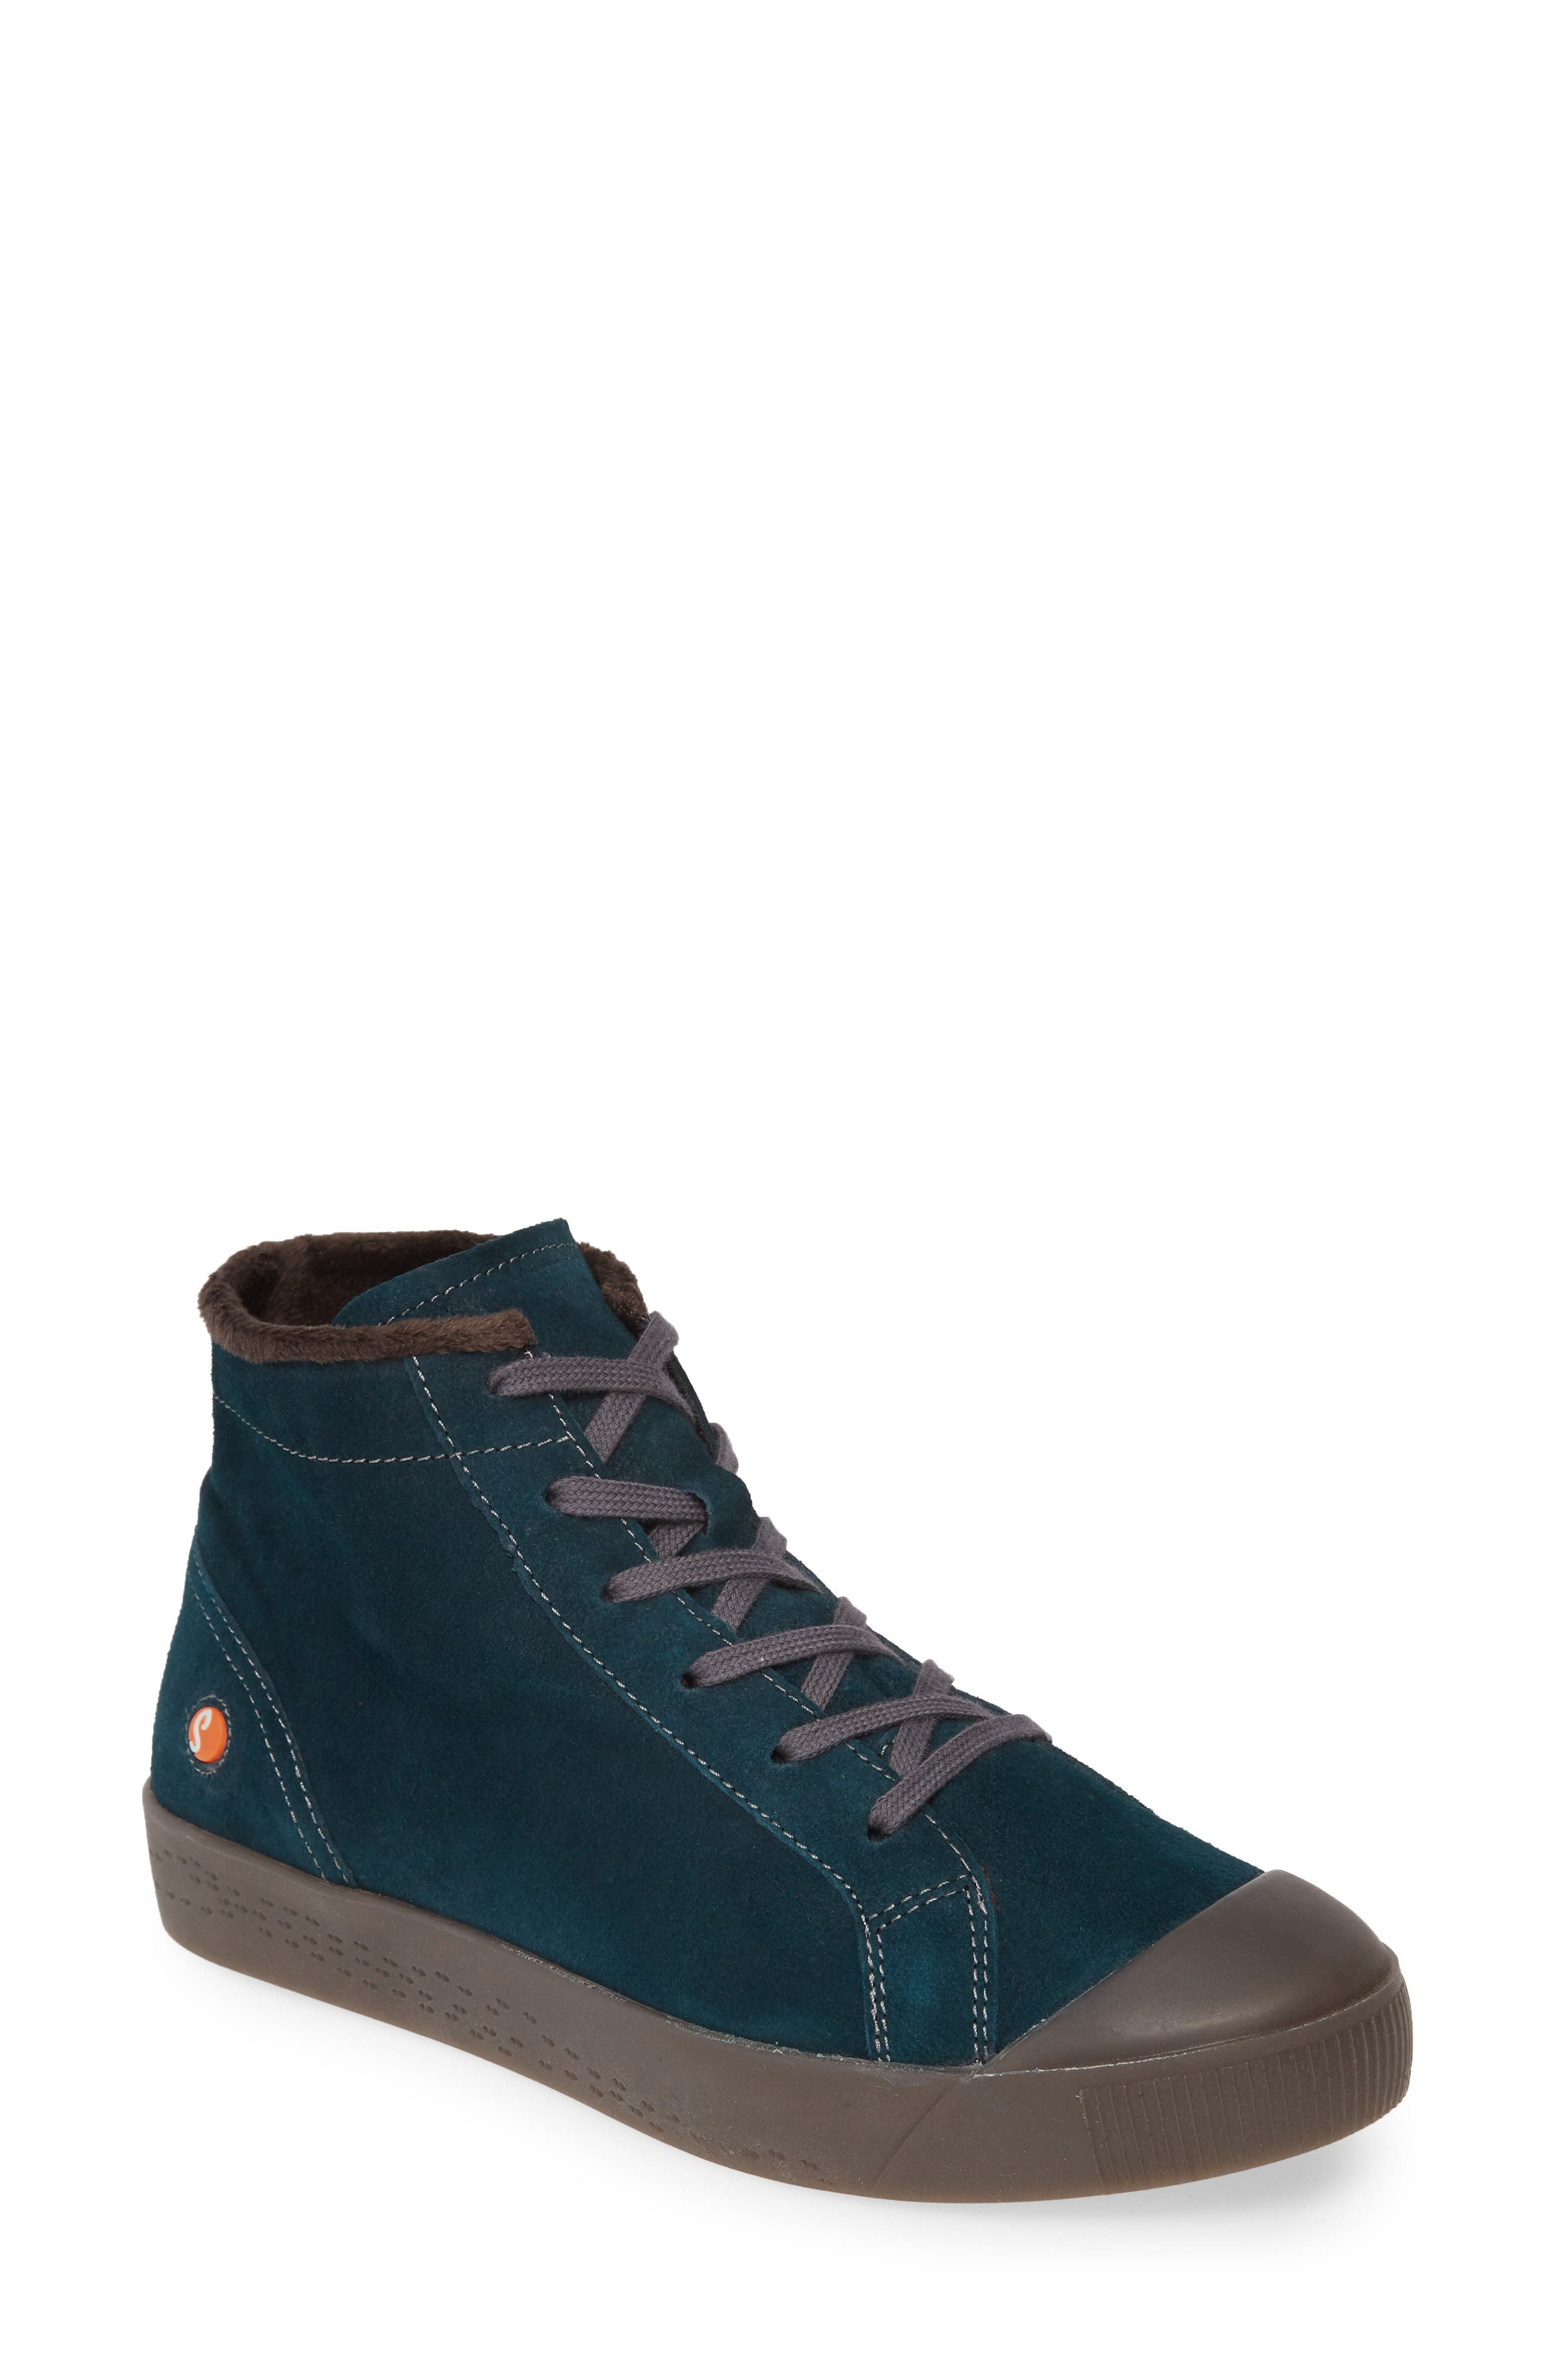 Softinos By Fly London Kip High Top Sneaker - Blue